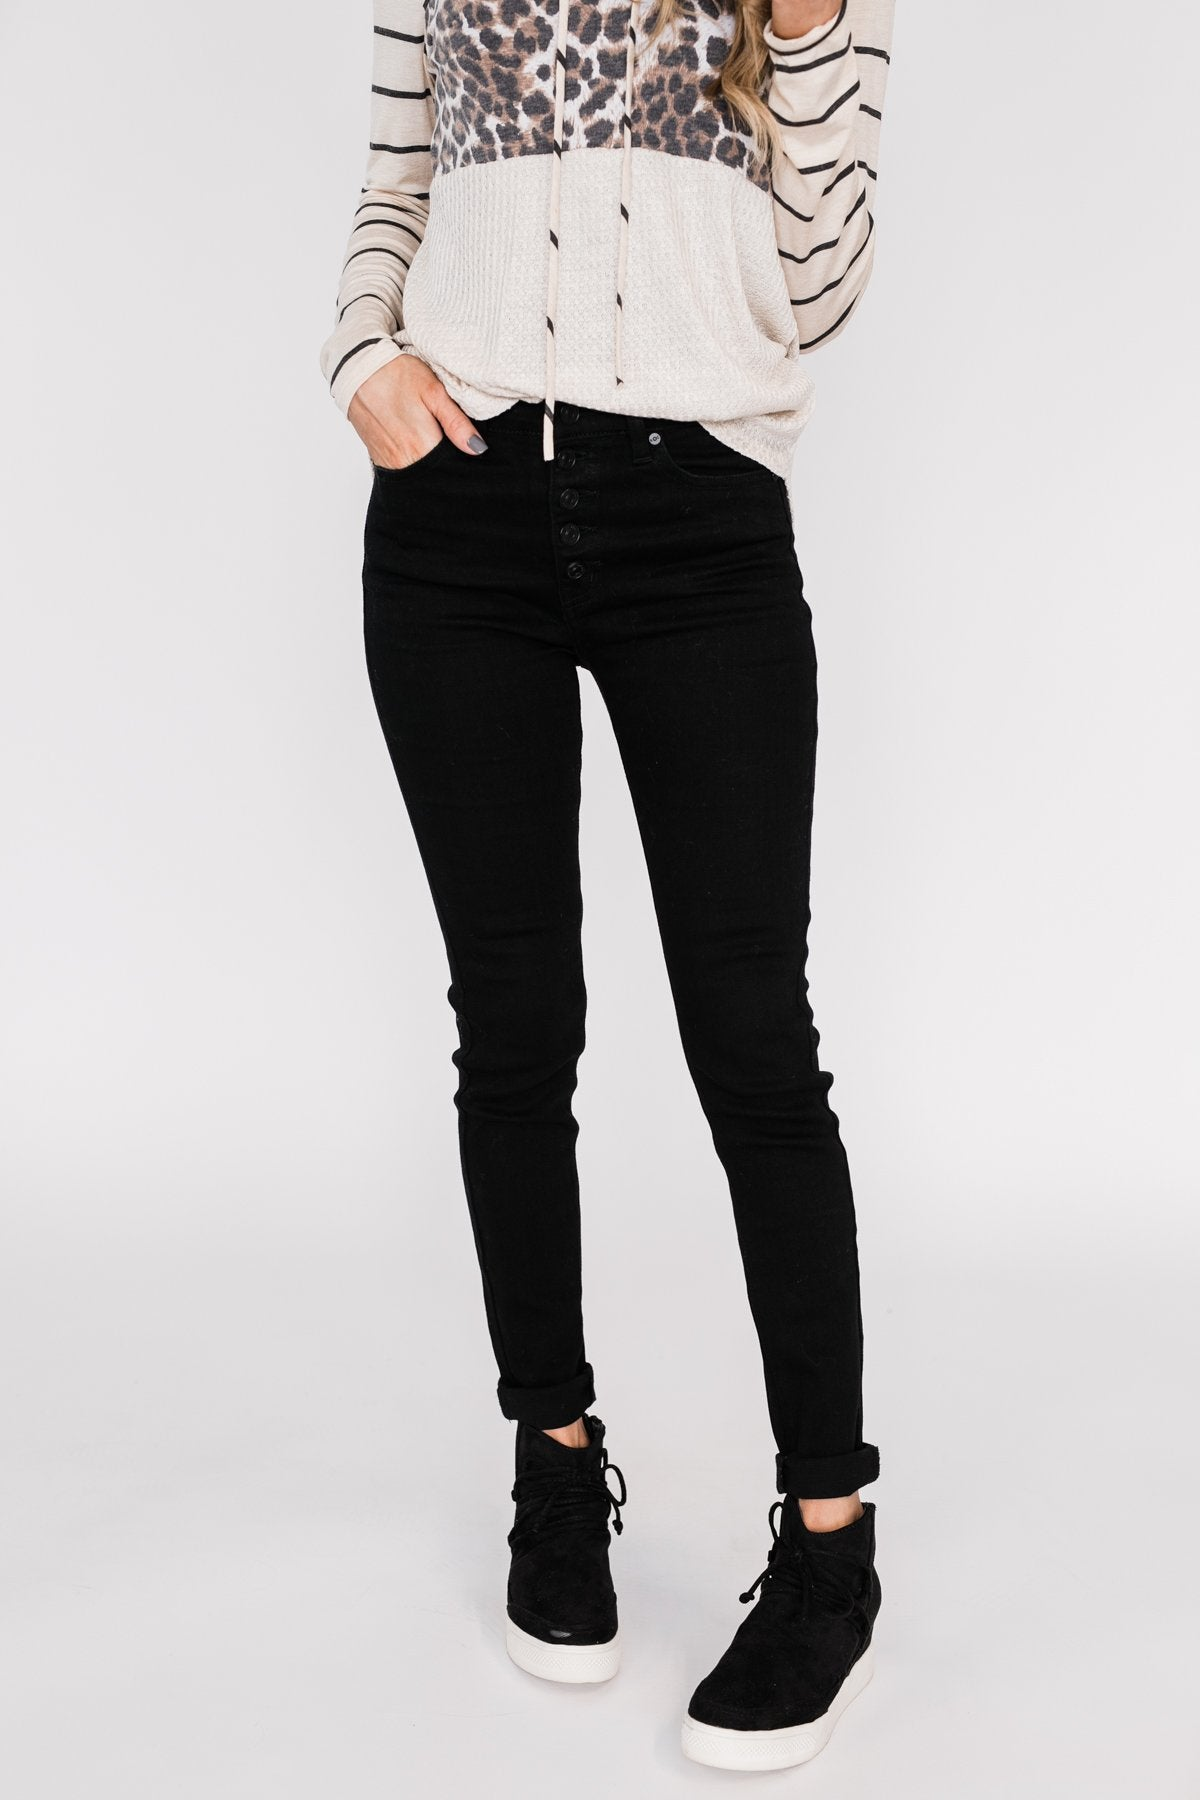 KanCan Button Fly Jeans- Hope Wash